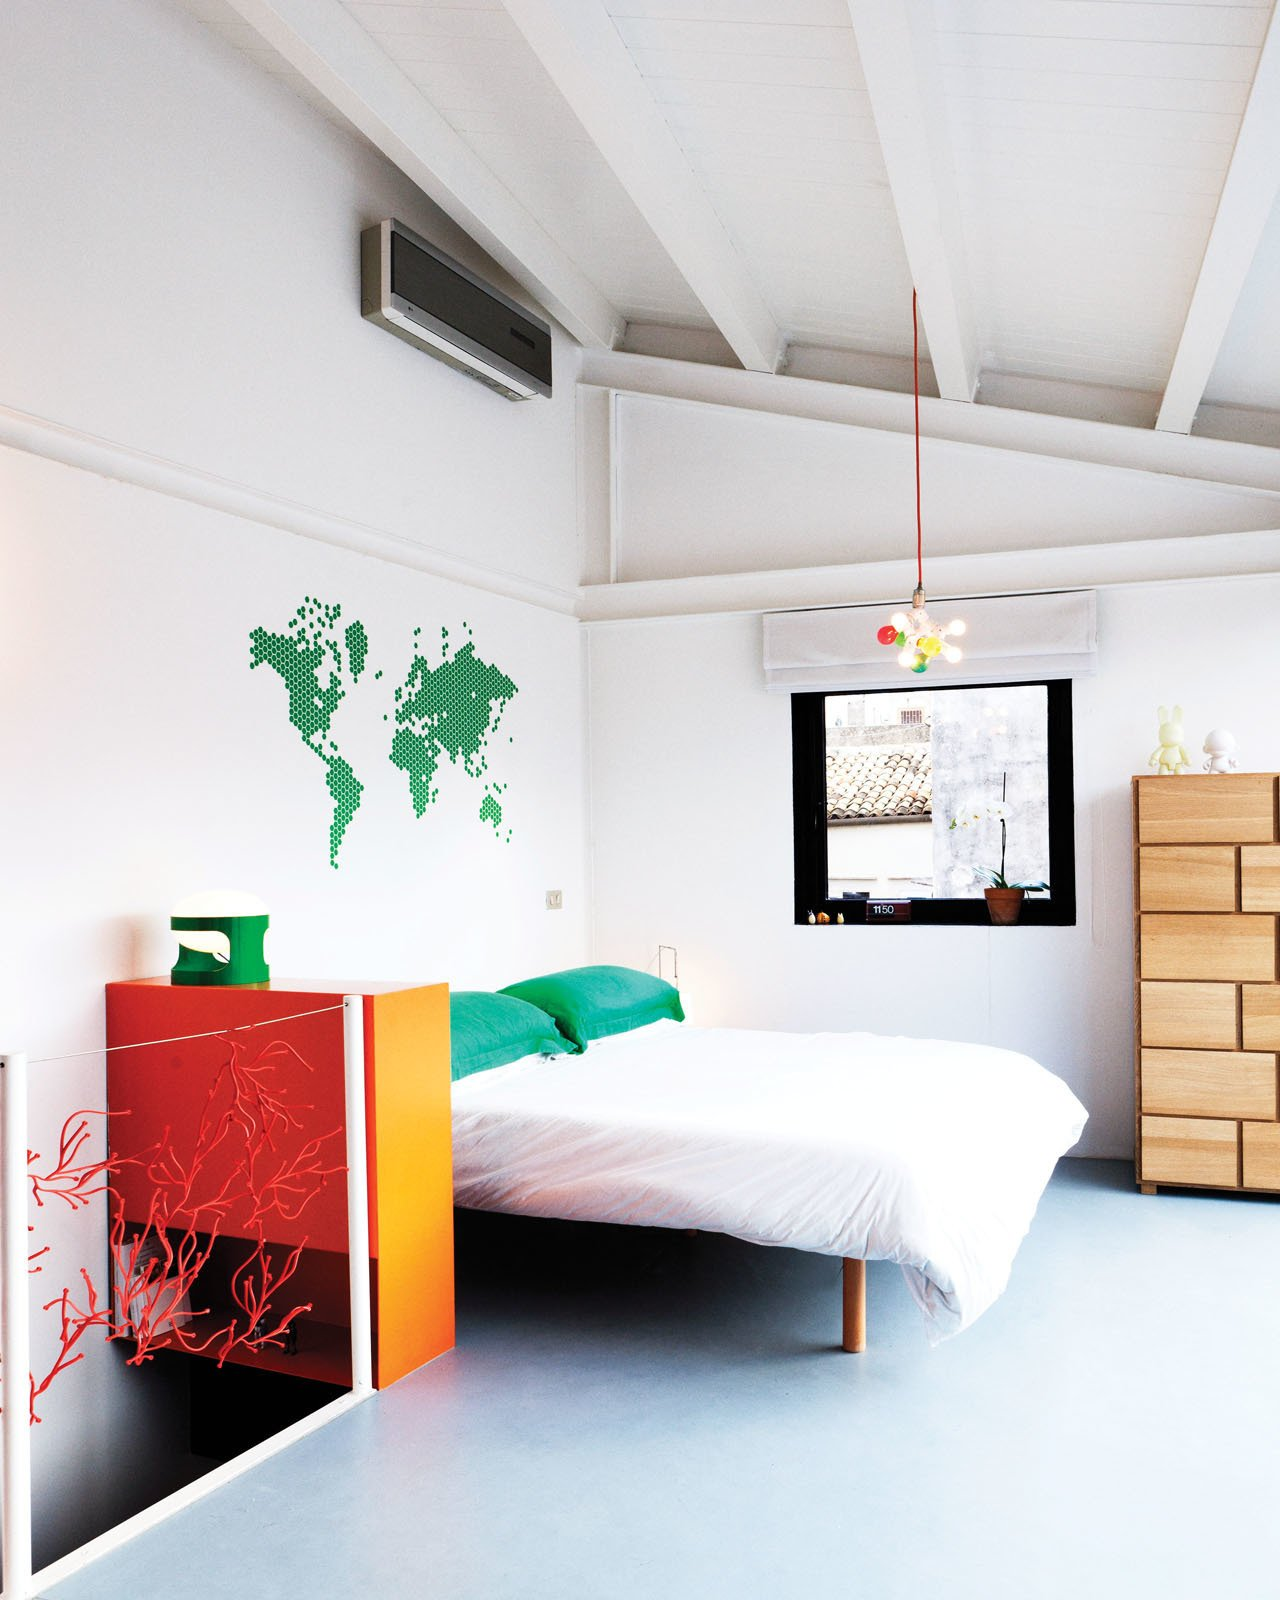 Francesco and Mafalda's bedroom is open and playful with only a bit of Algue by Ronan and Erwan Bouroullec guarding the stairs. The lamp was designed by Francesco himself and the decal on the wall is from My Vinilo. Tagged: Bedroom, Bed, Dresser, and Pendant Lighting.  How to Design With Maps by Zachary Edelson from Stylish Sicilian Bedroom